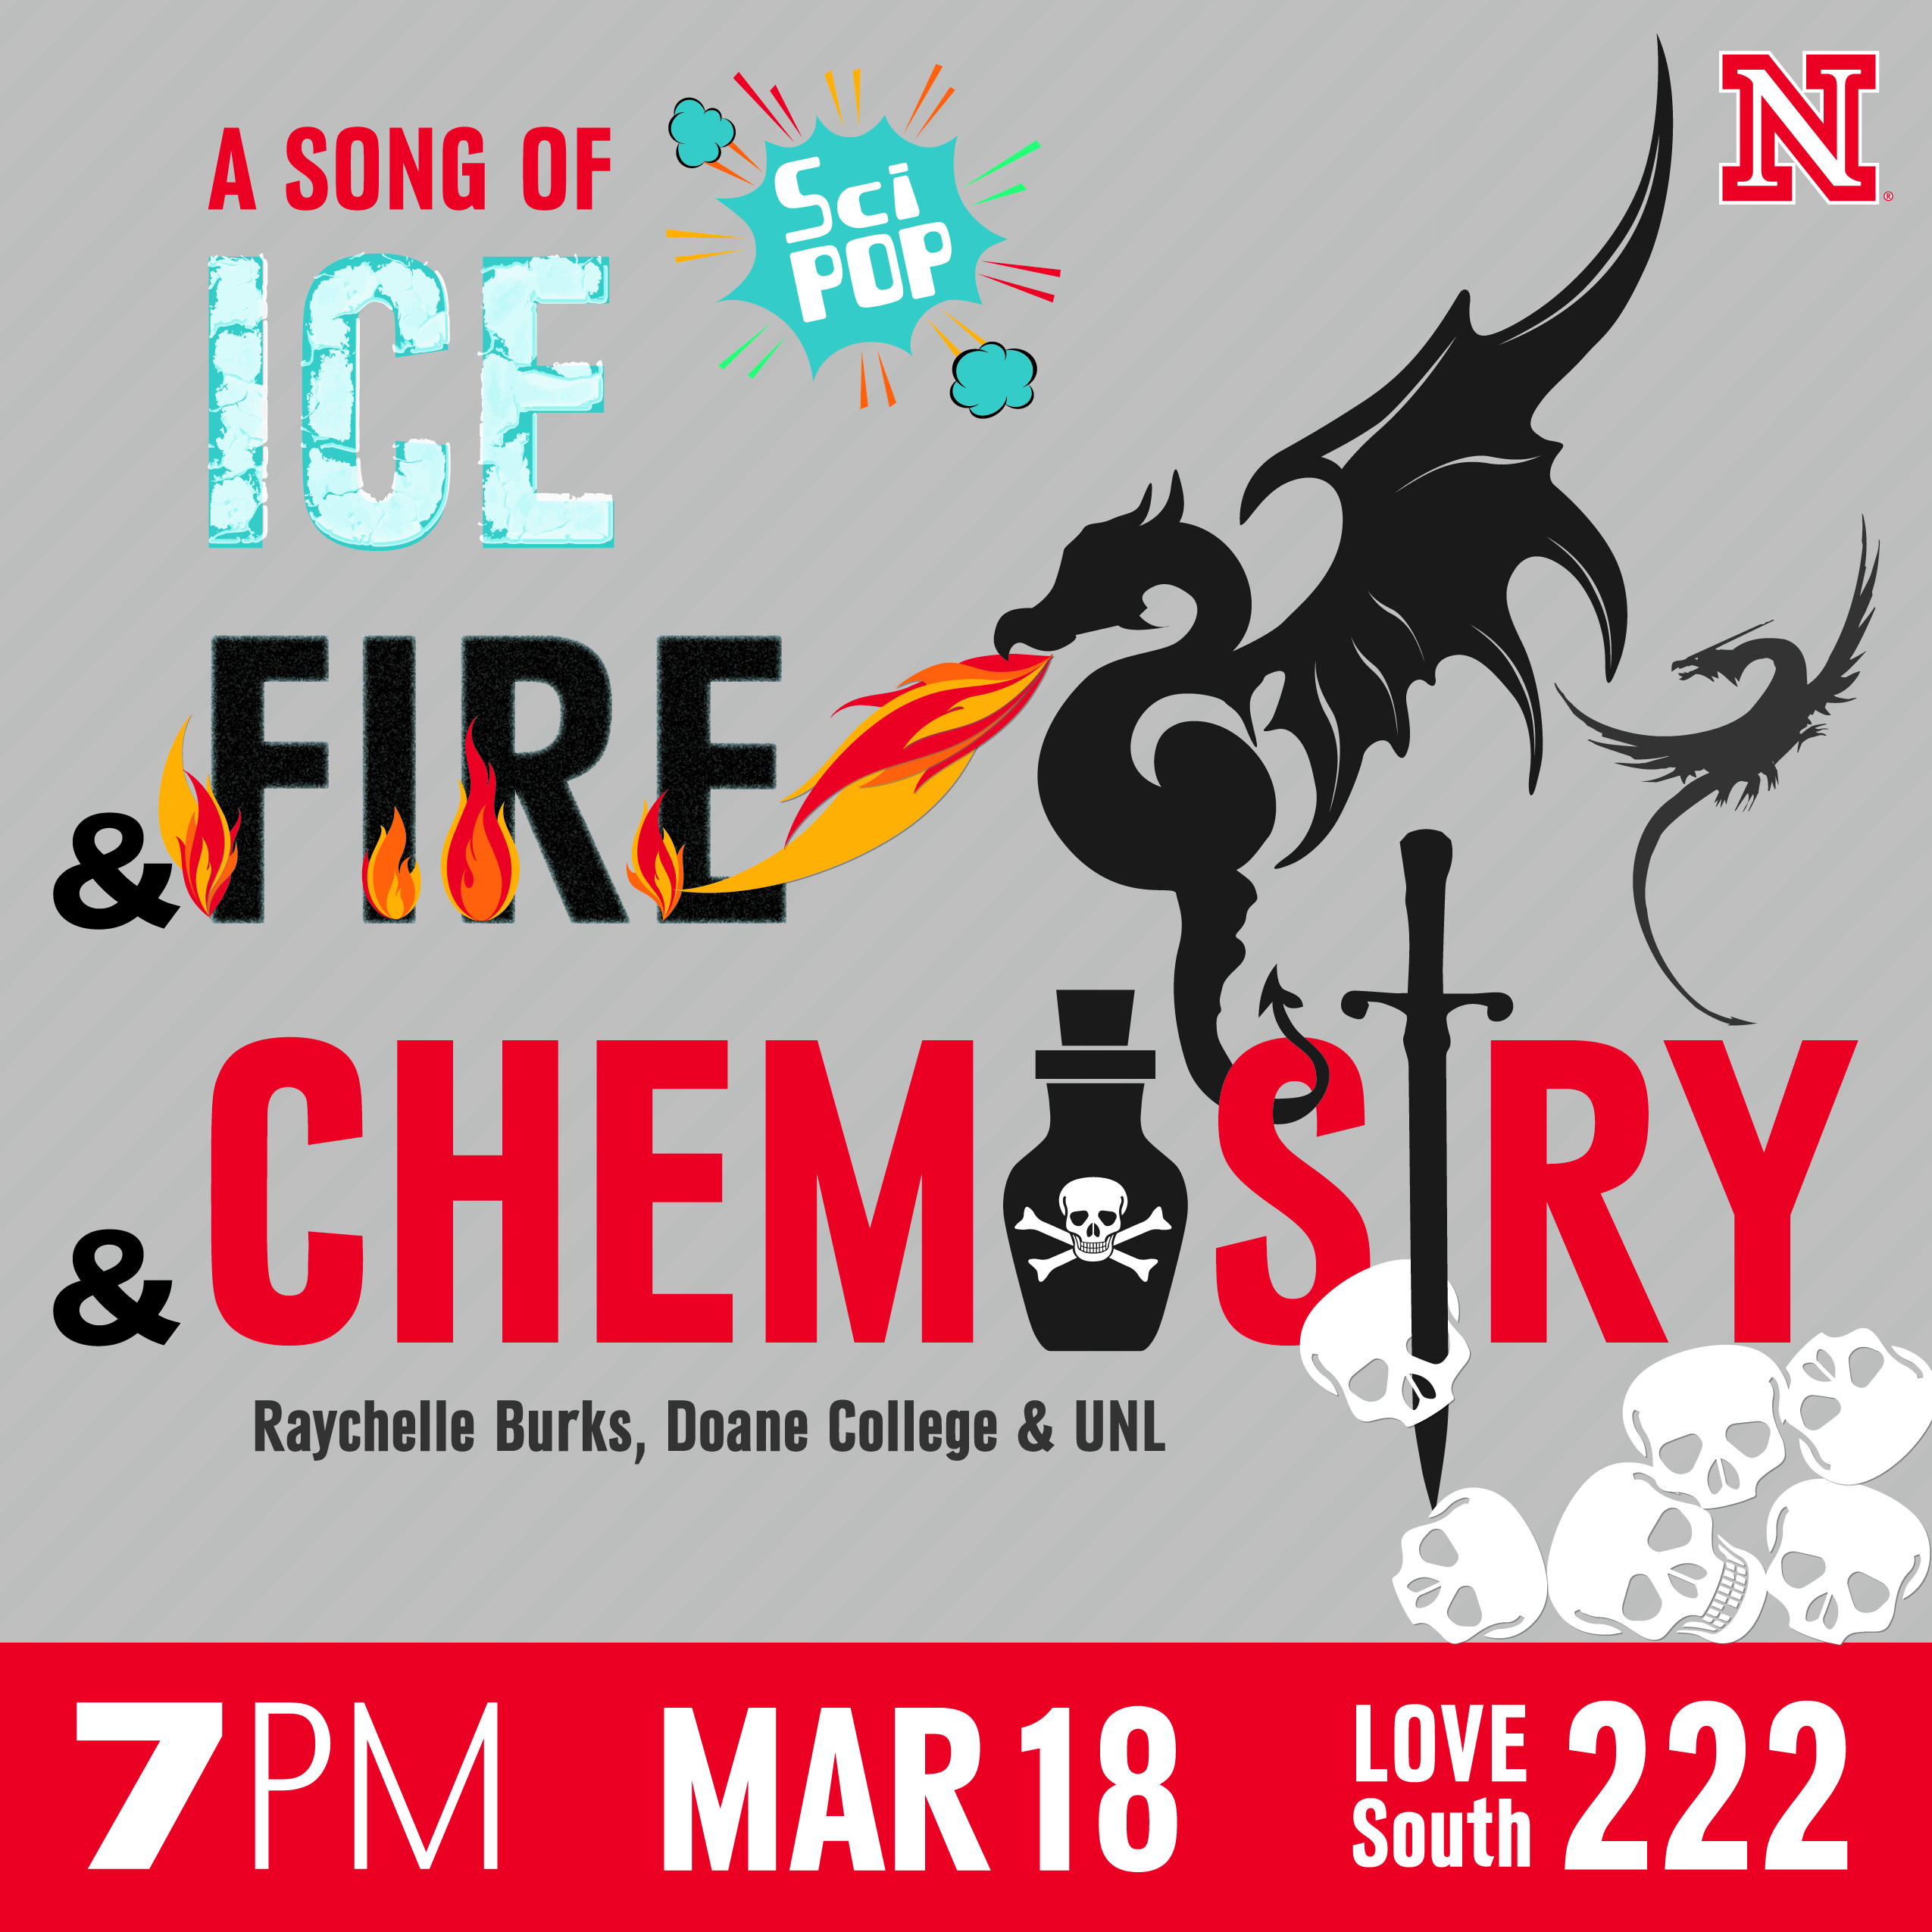 A Song of Ice and Fire and Chemistry